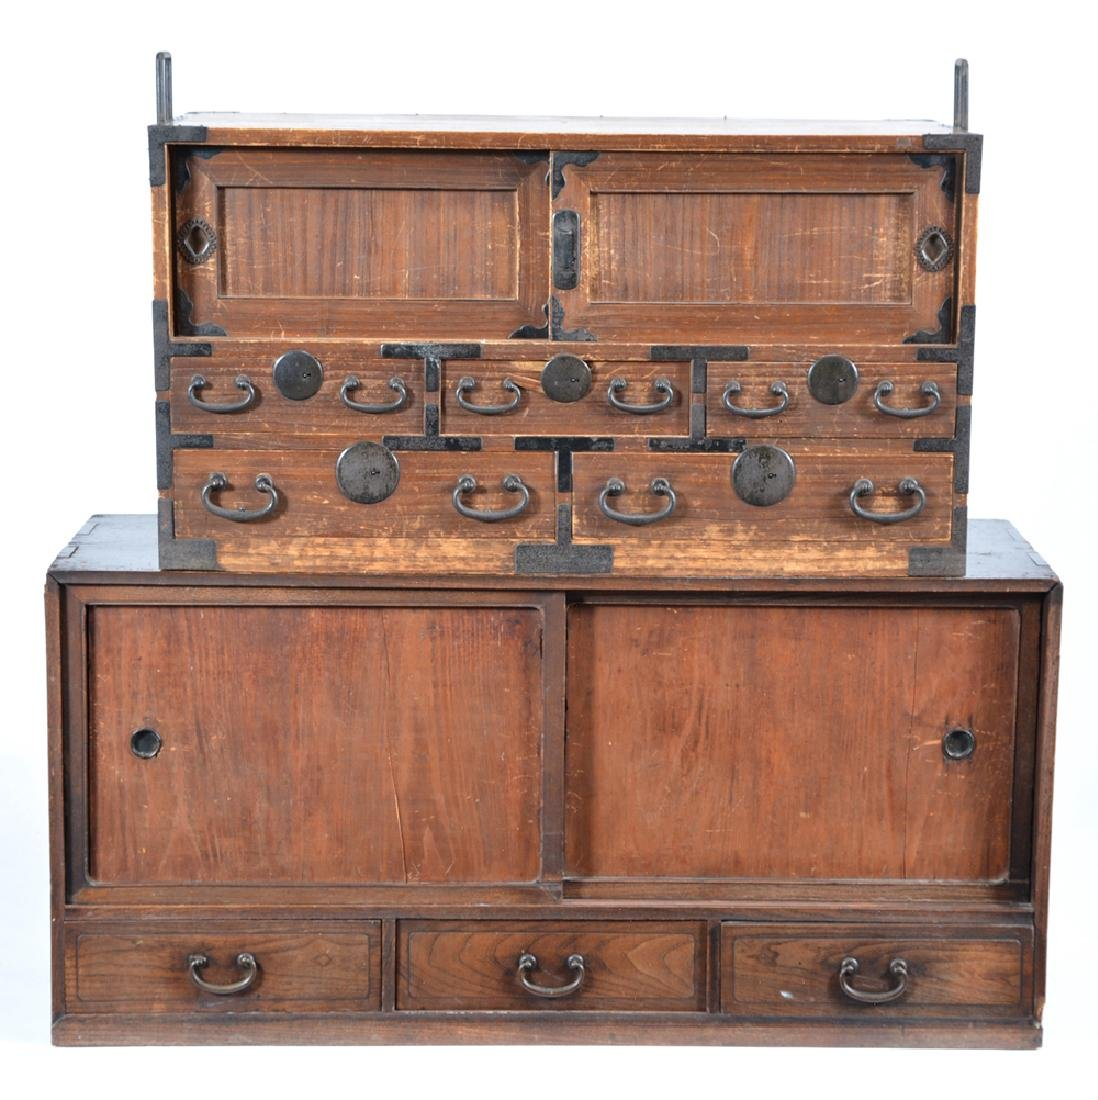 2 Japanese tansu chests